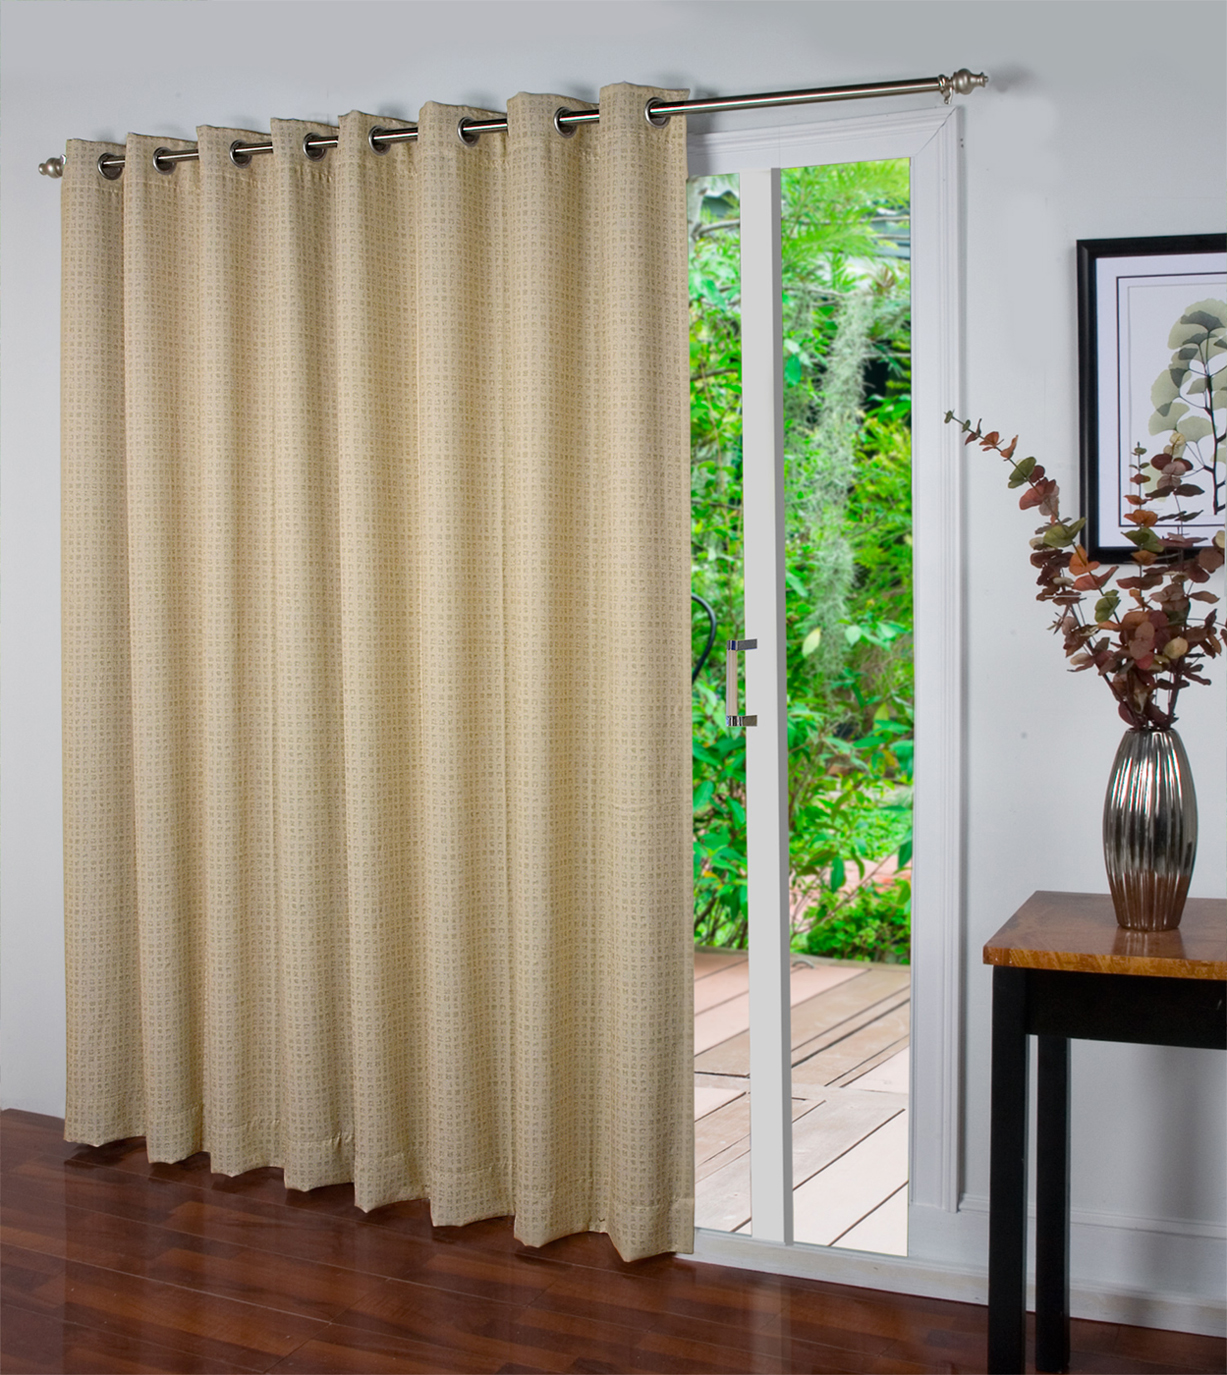 door prime curtain home image the patio inside for drapes best ideas curtains sliding doors grommet of glass redesign